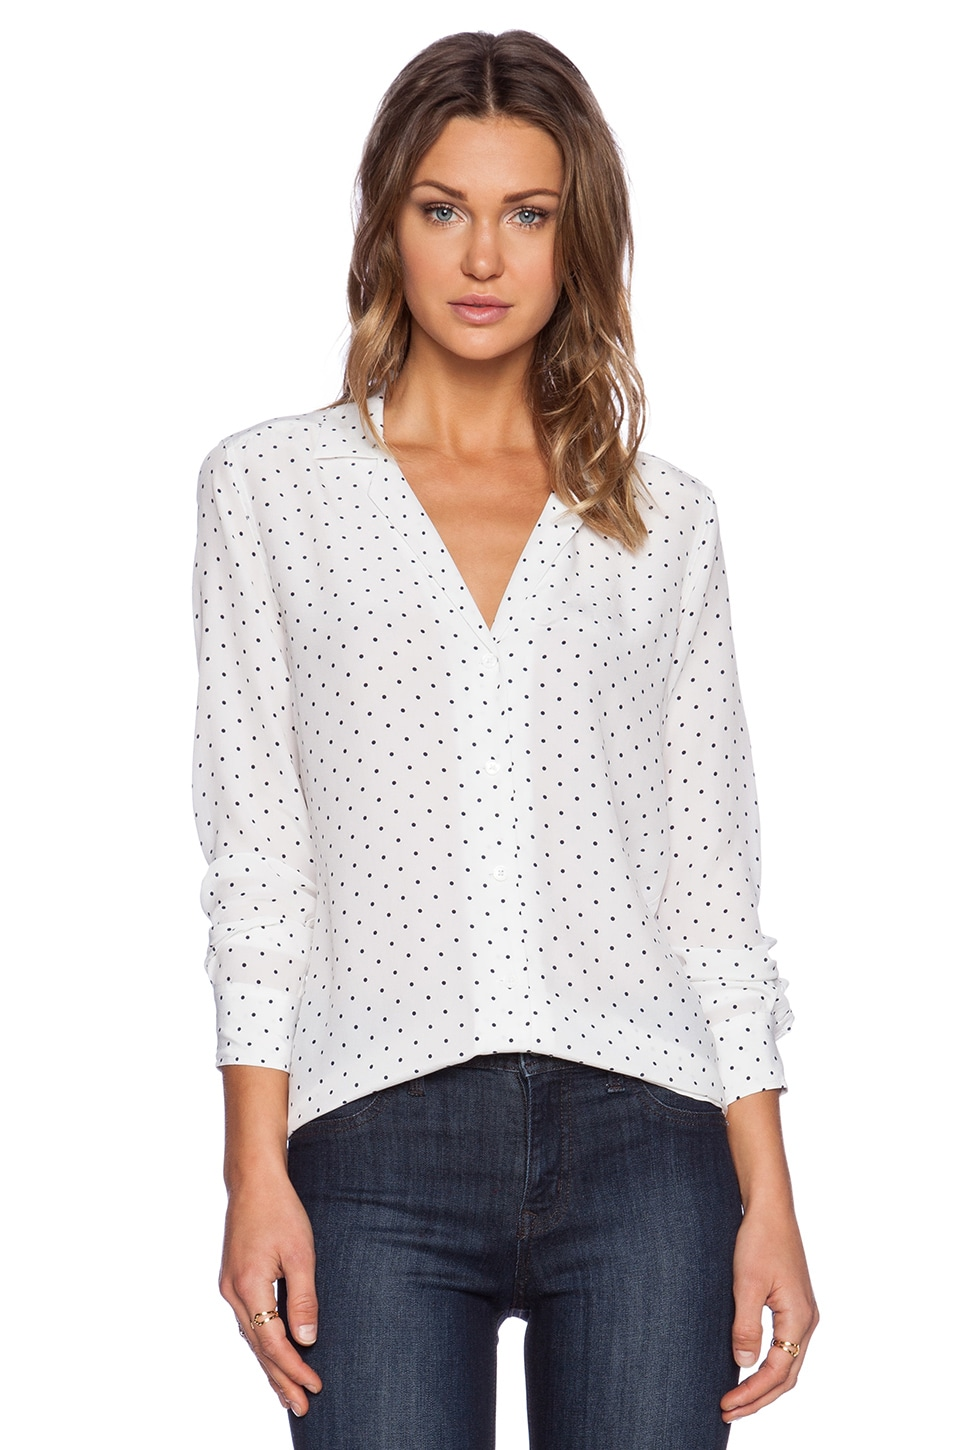 Equipment Adalyn Uniform Dot Blouse in Bright White